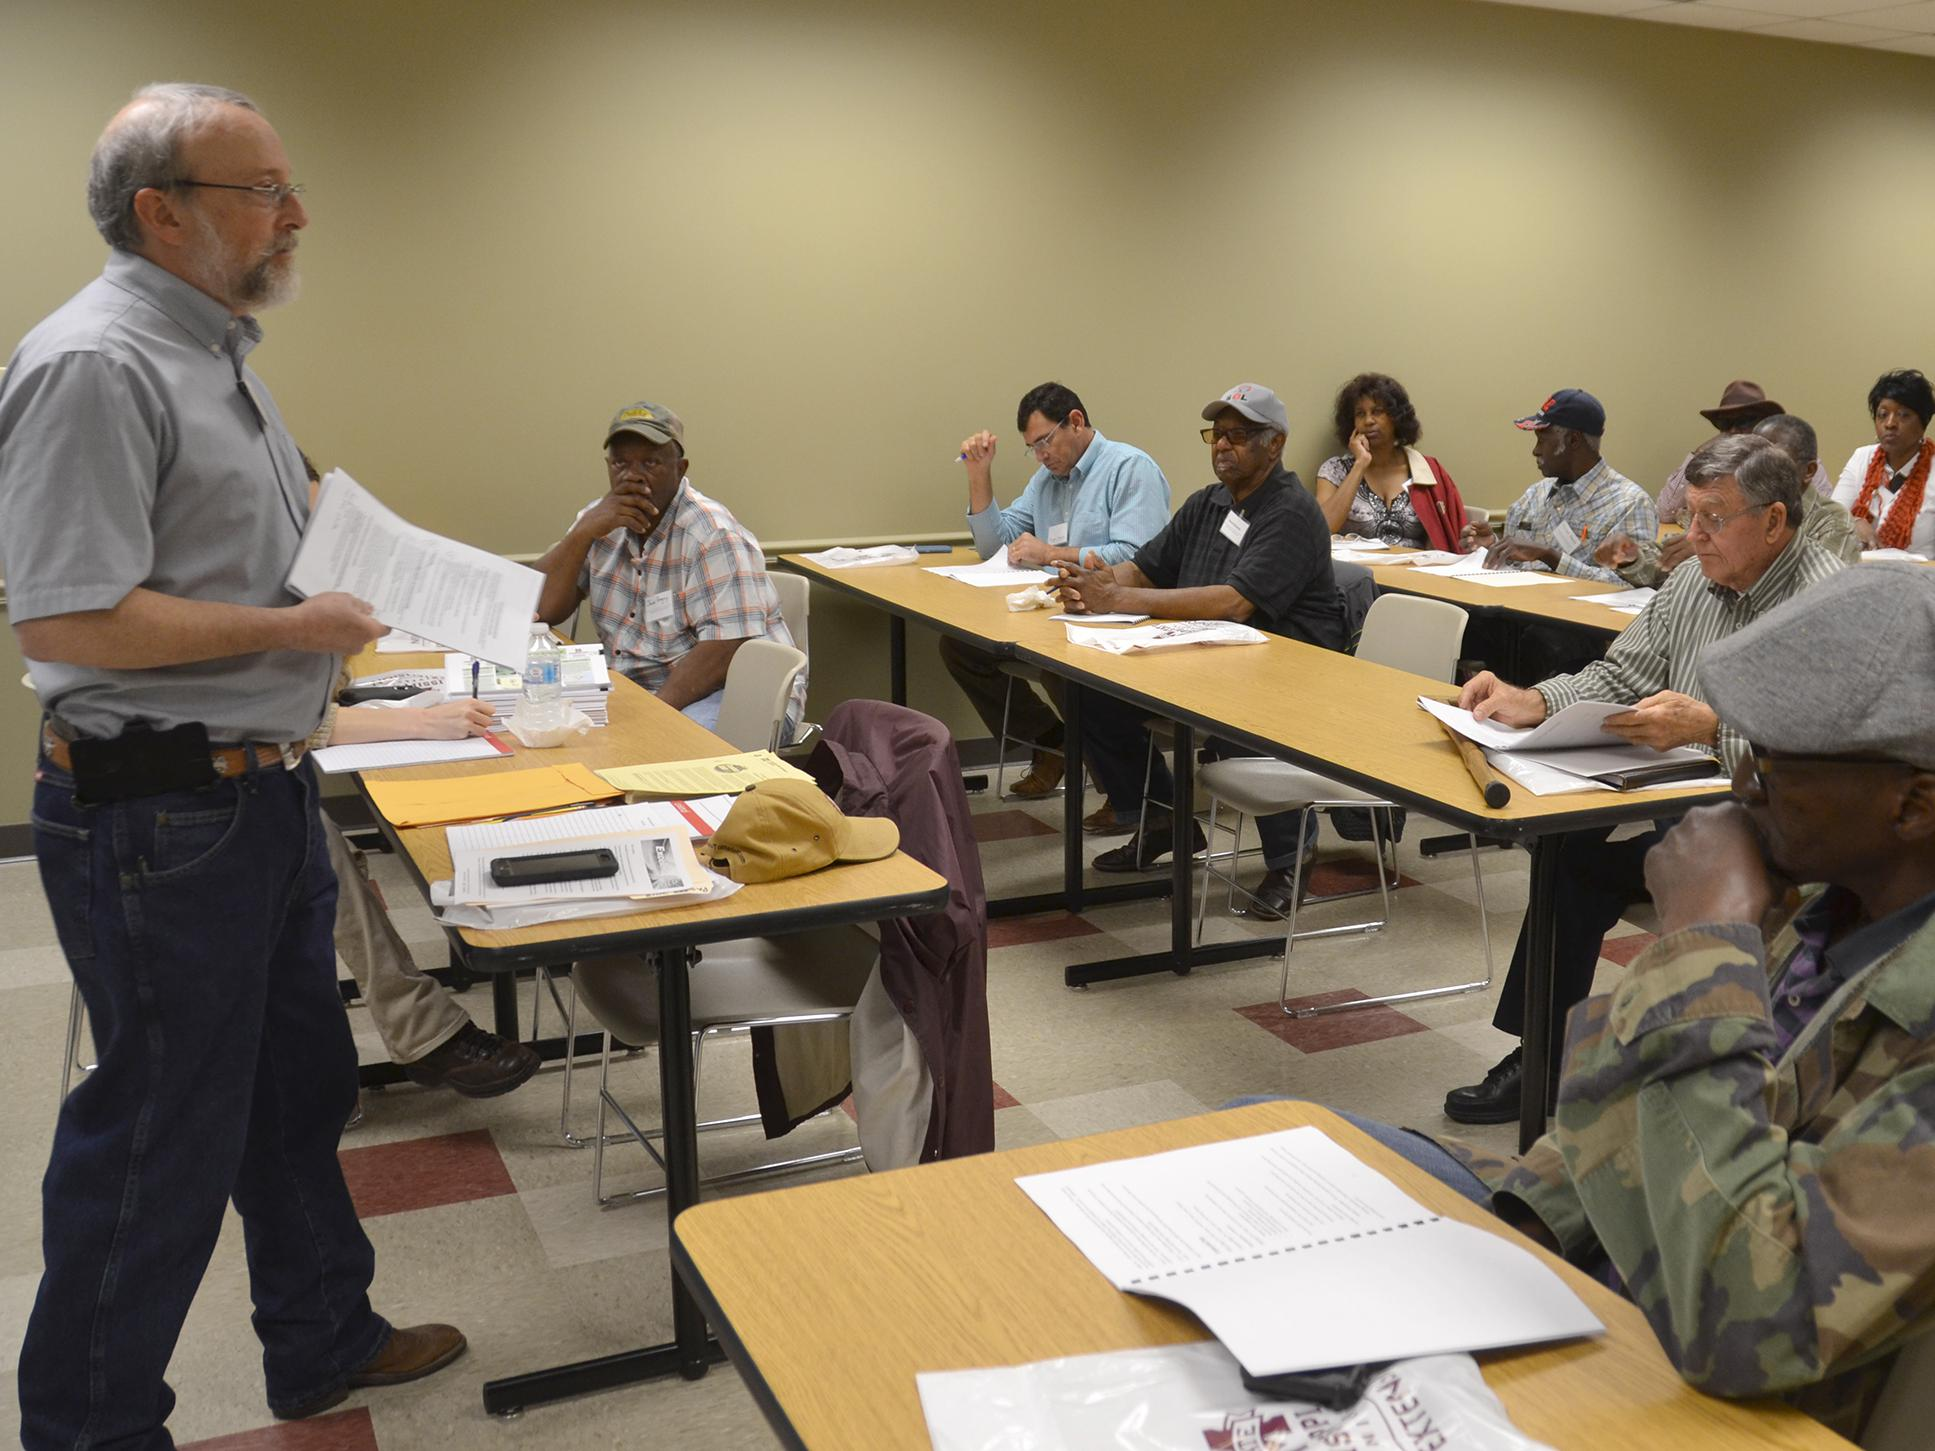 A Mississippi State University specialist stands before a room of seated meeting participants.